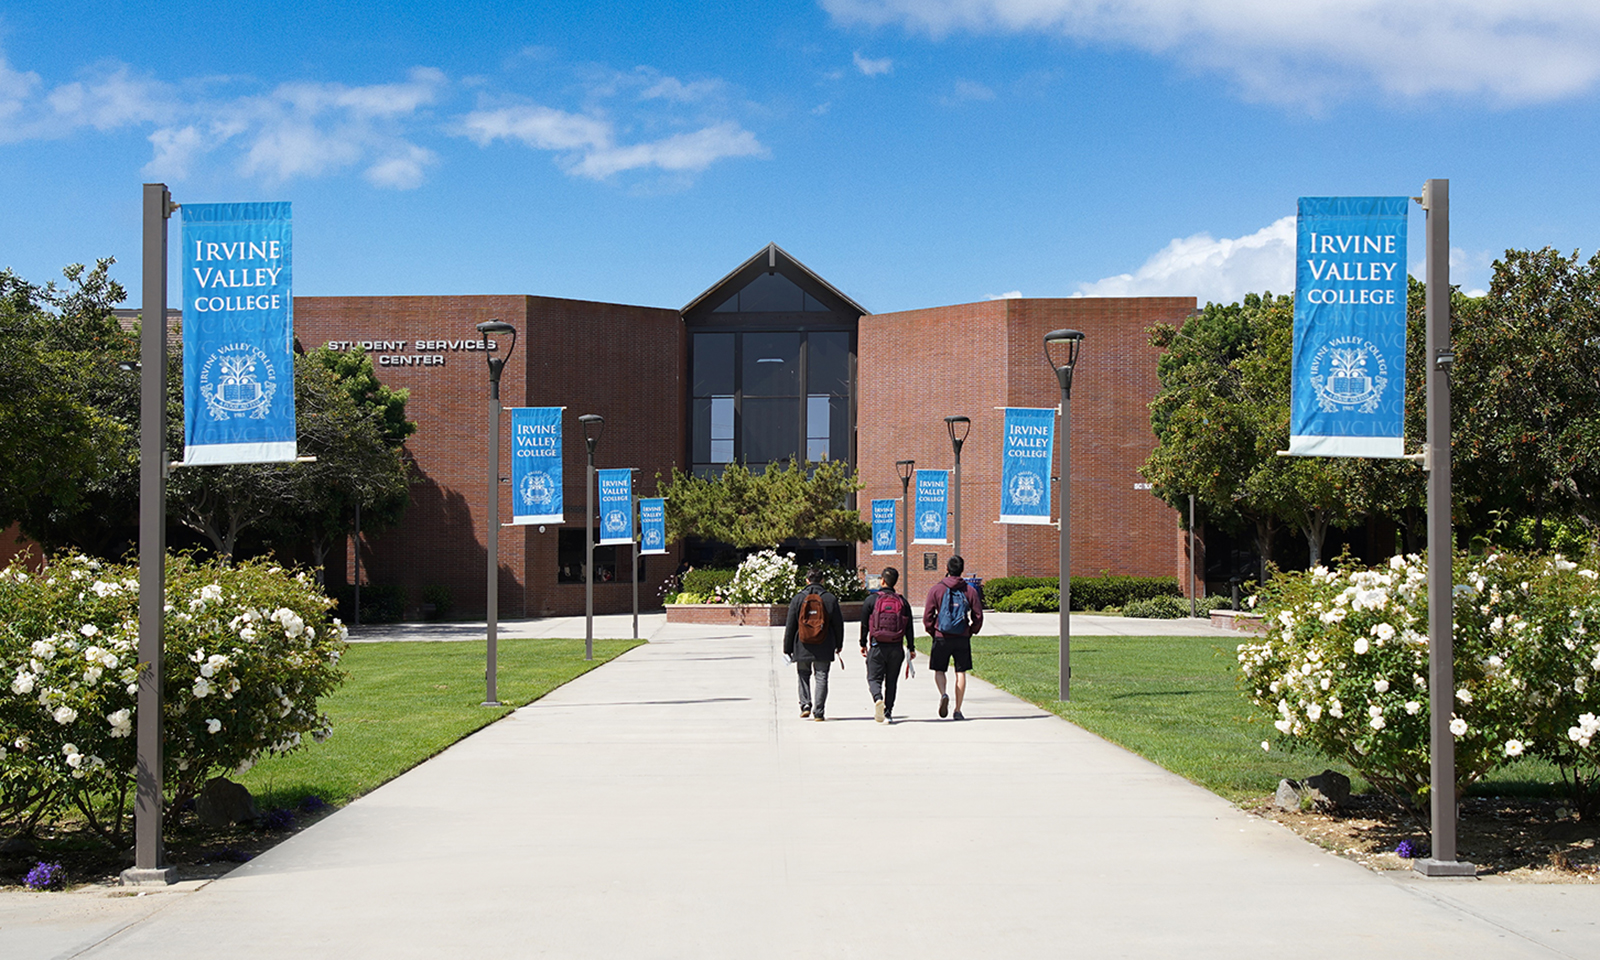 Top 10 Buildings You Need to Know at Irvine Valley College